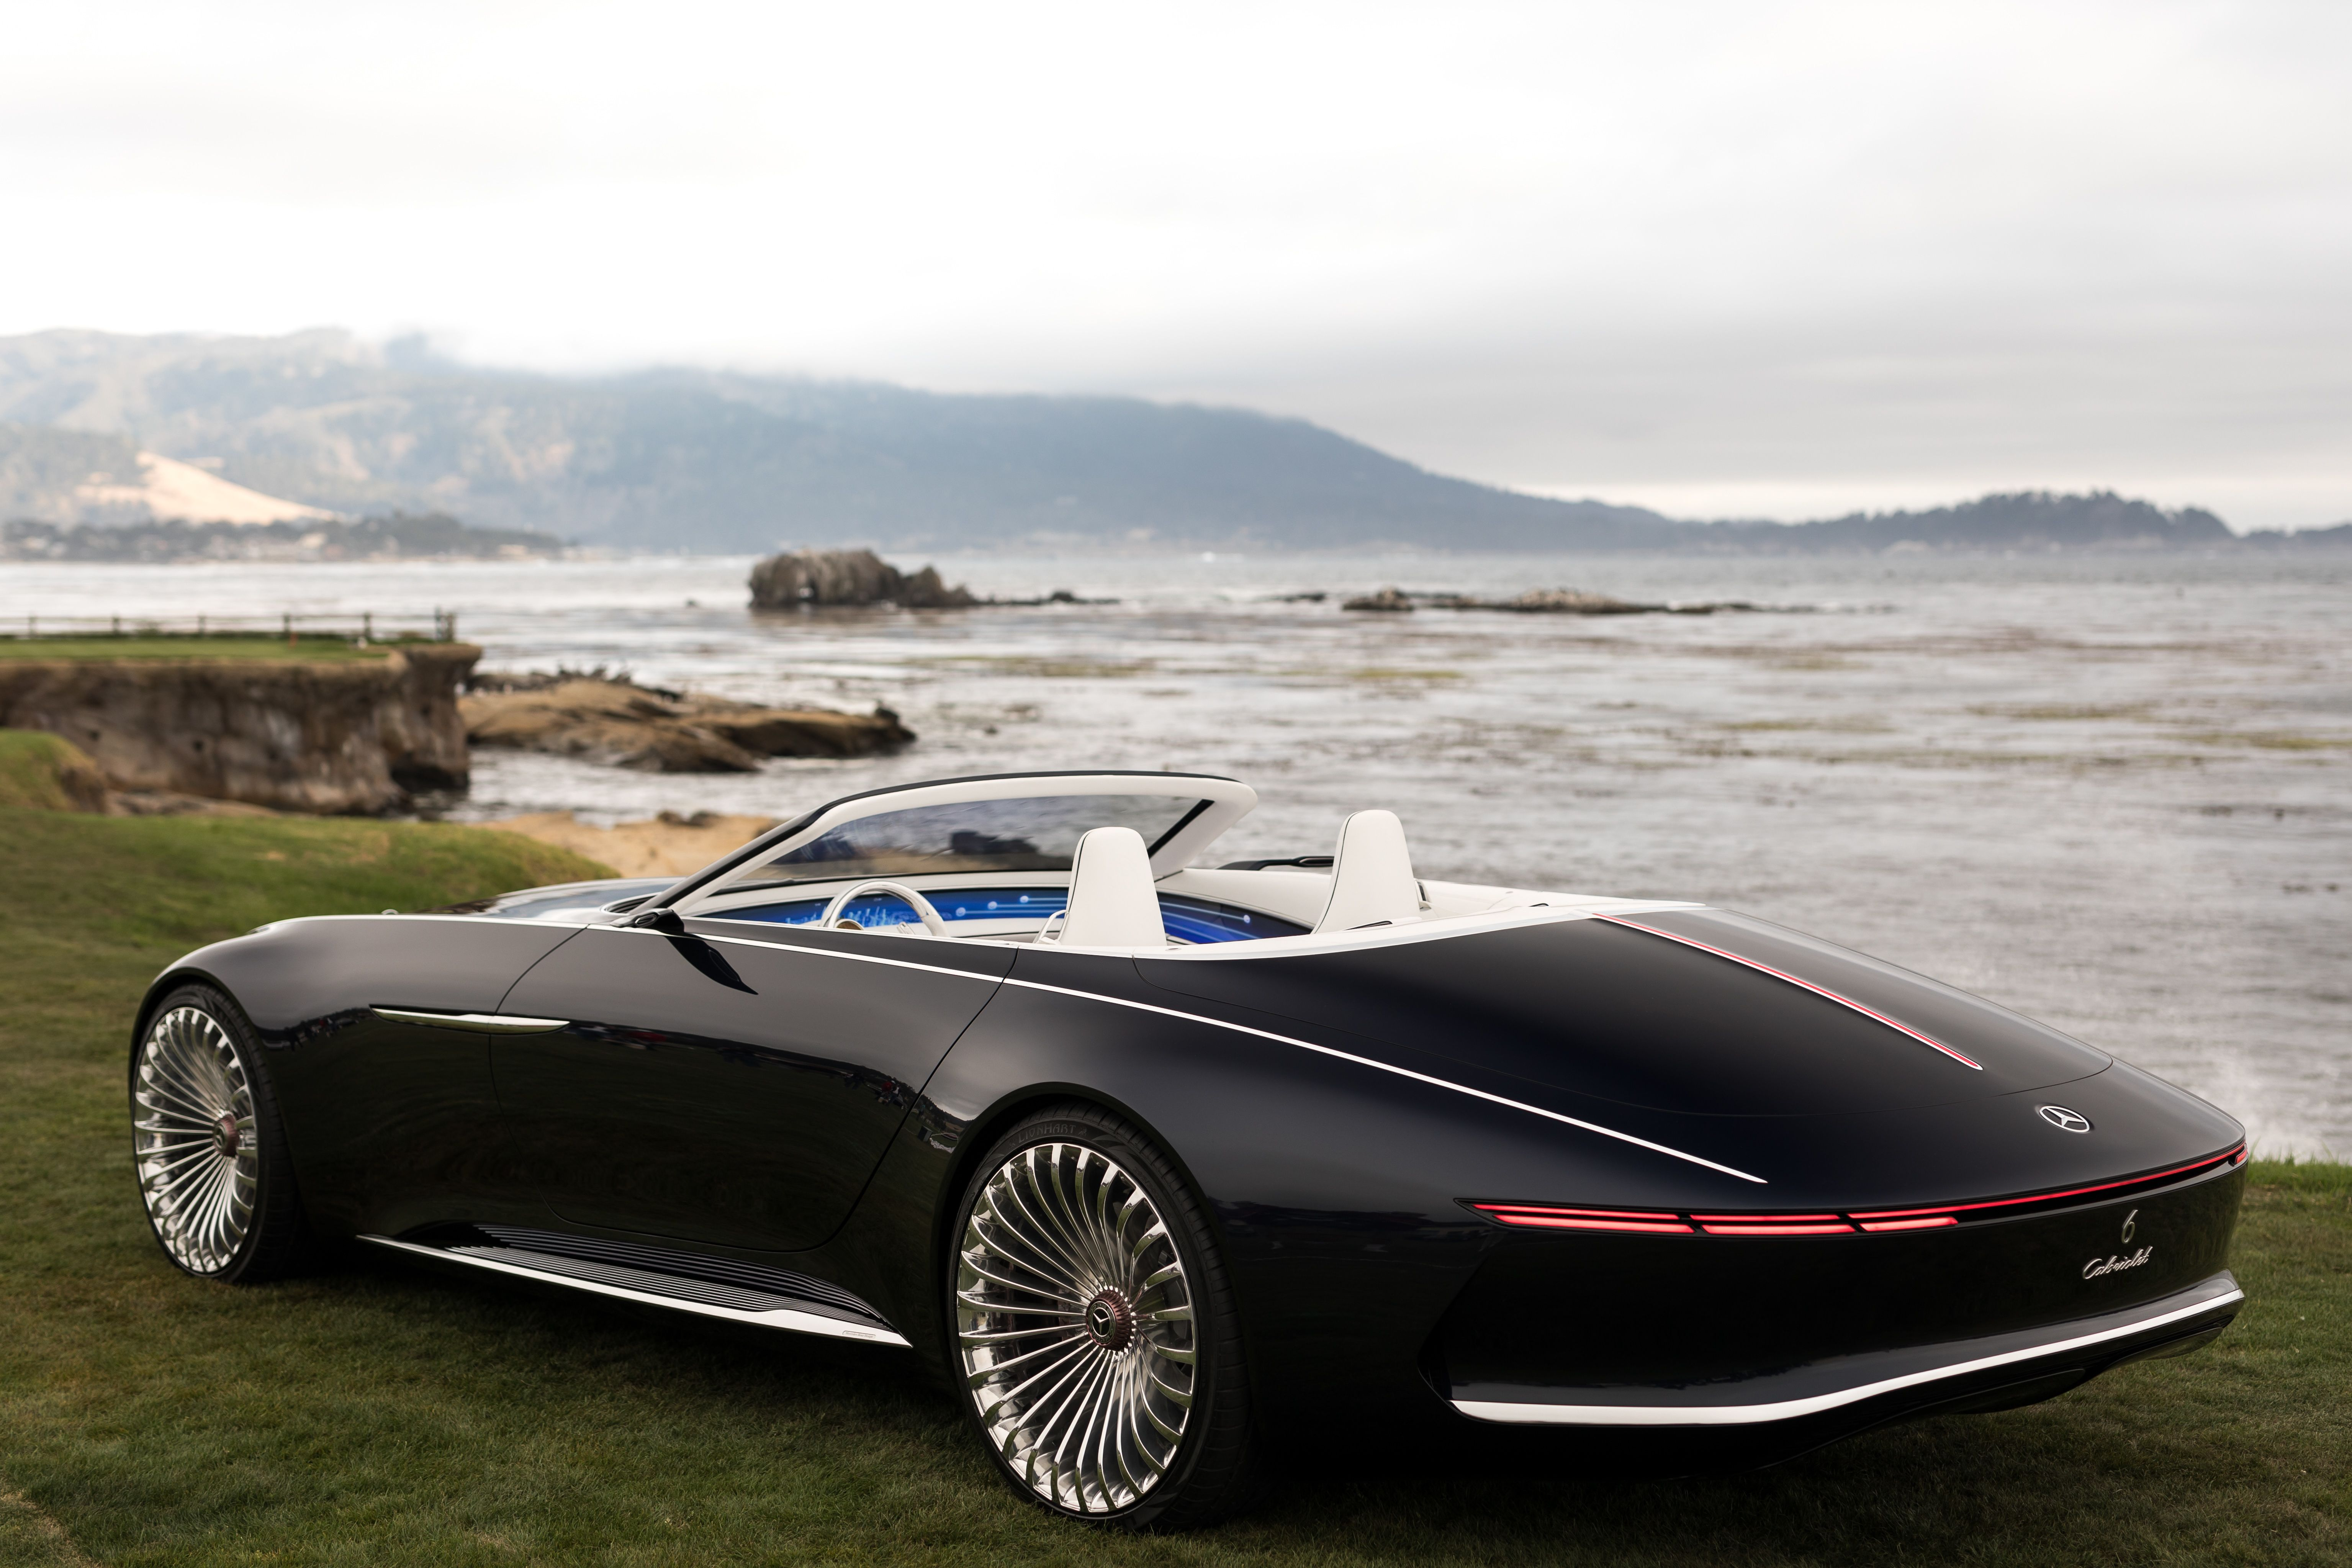 Vision Mercedes Maybach 6 Cabriolet Photographed In Pebble Beach California By Jensen Larson For Mercedes Benz Usa Mercedes Maybach Maybach Cabriolets